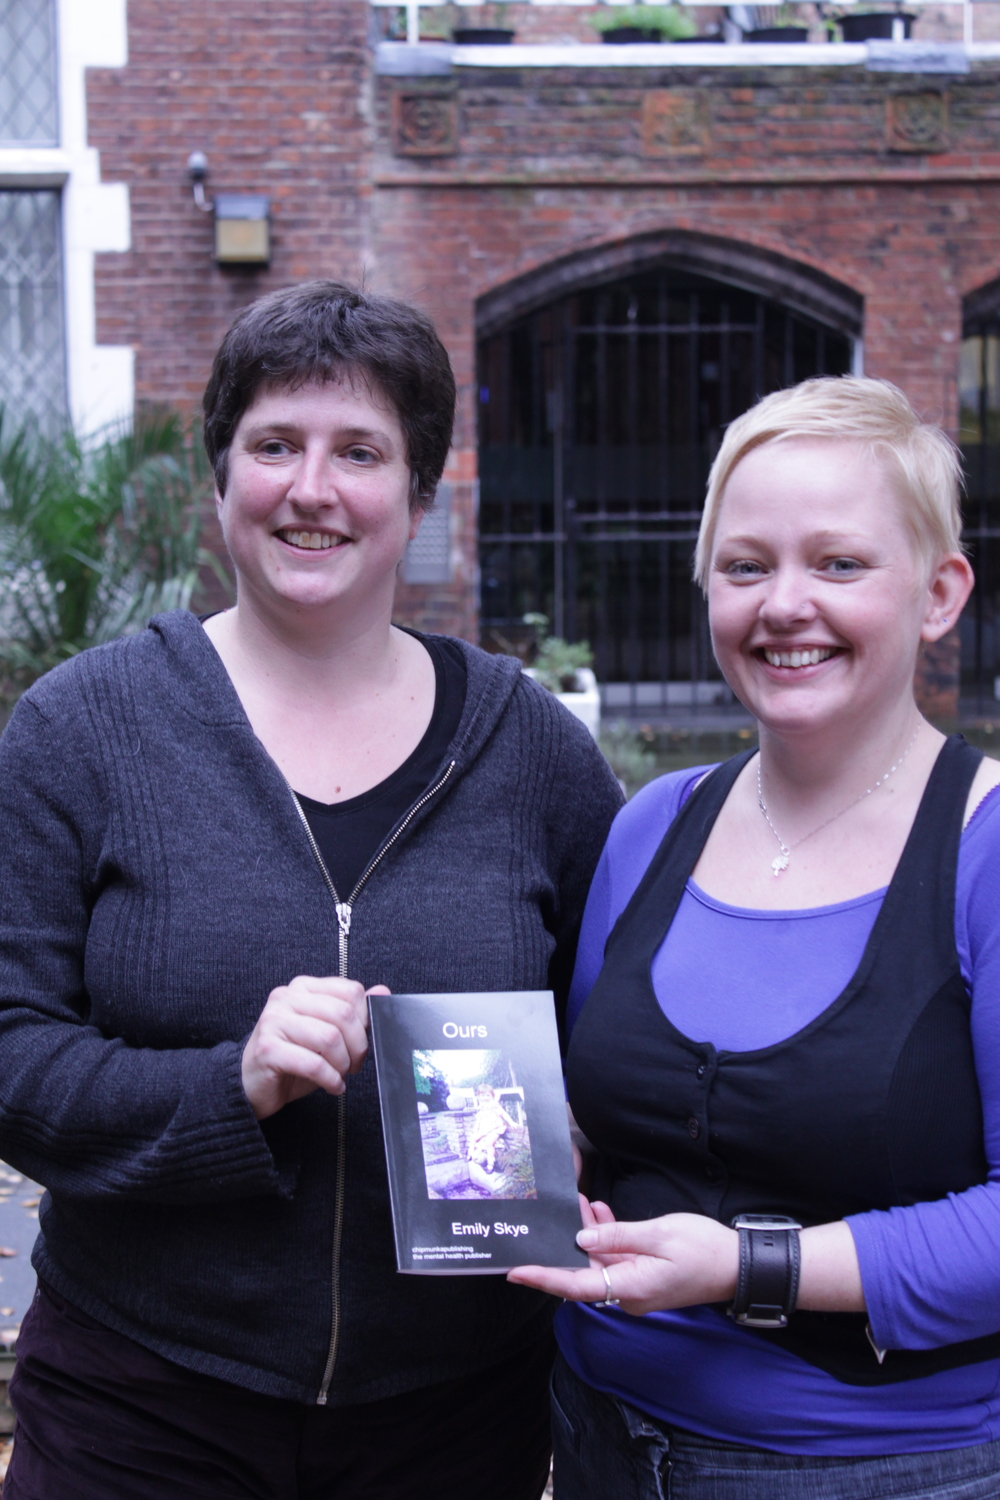 Emily Skye (left) and Kathyrn Morris-Roberts (right). Image Courtesy of the British Gestalt Journal.